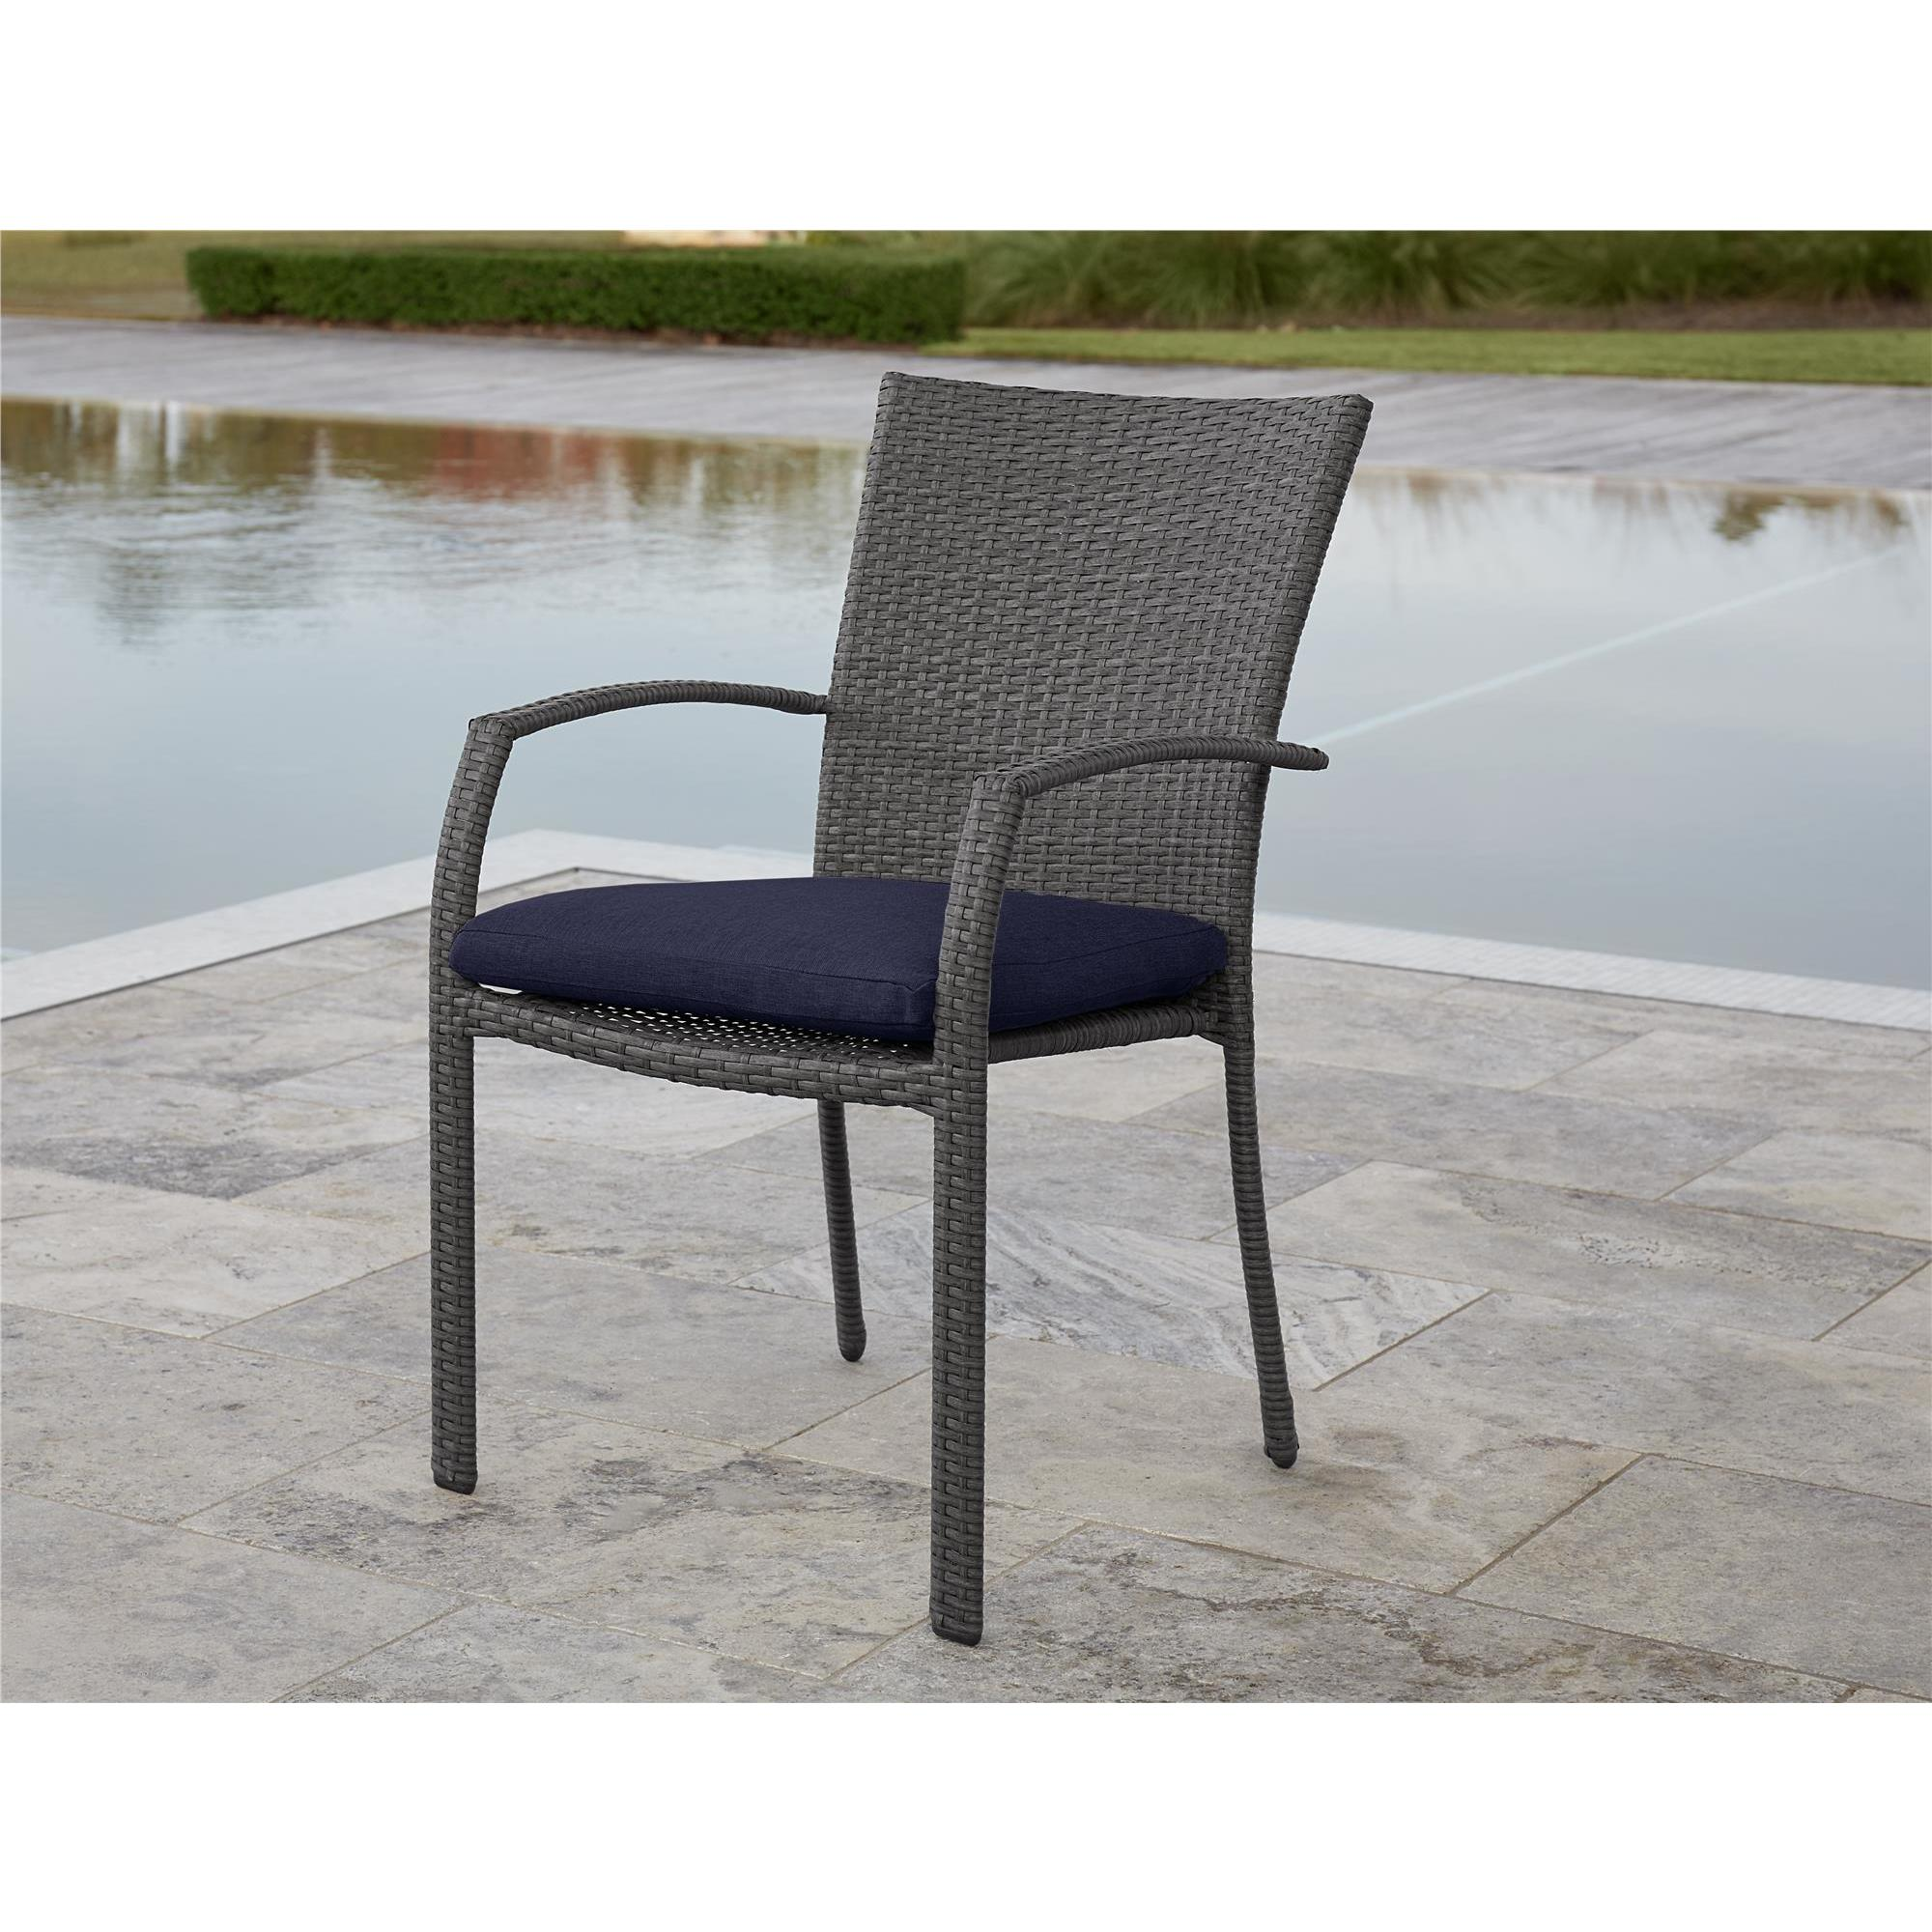 Outdoor Wicker Dining Chairs Avenue Greene Grey Blue Outdoor Woven Wicker Dining Chairs 6 Pack